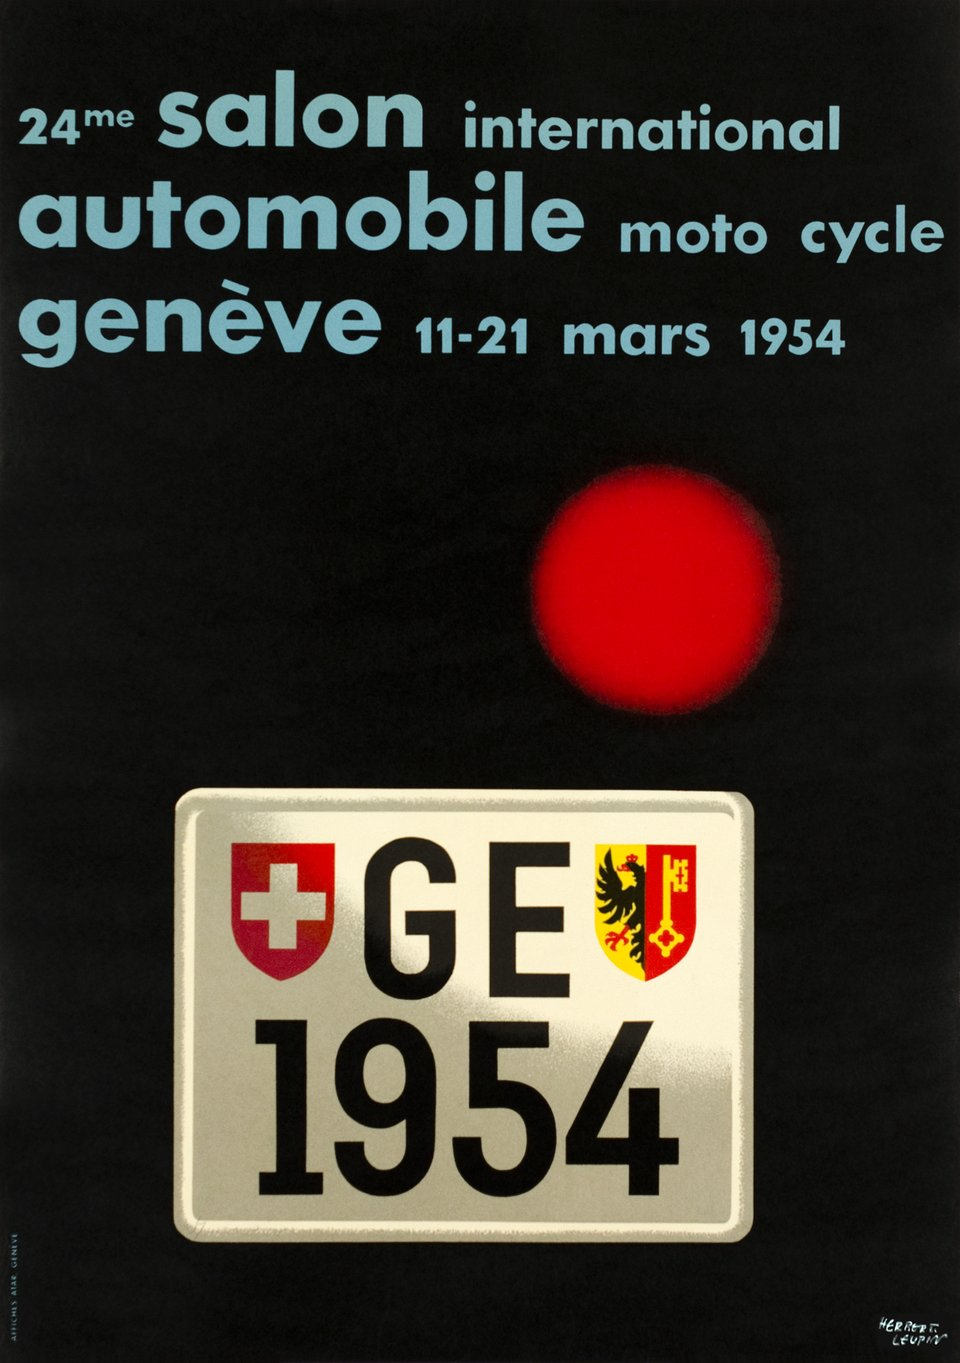 Genève Mars 1954, 24e Salon International Automobile Moto Cycle – Vintage poster – Herbert LEUPIN – 1954